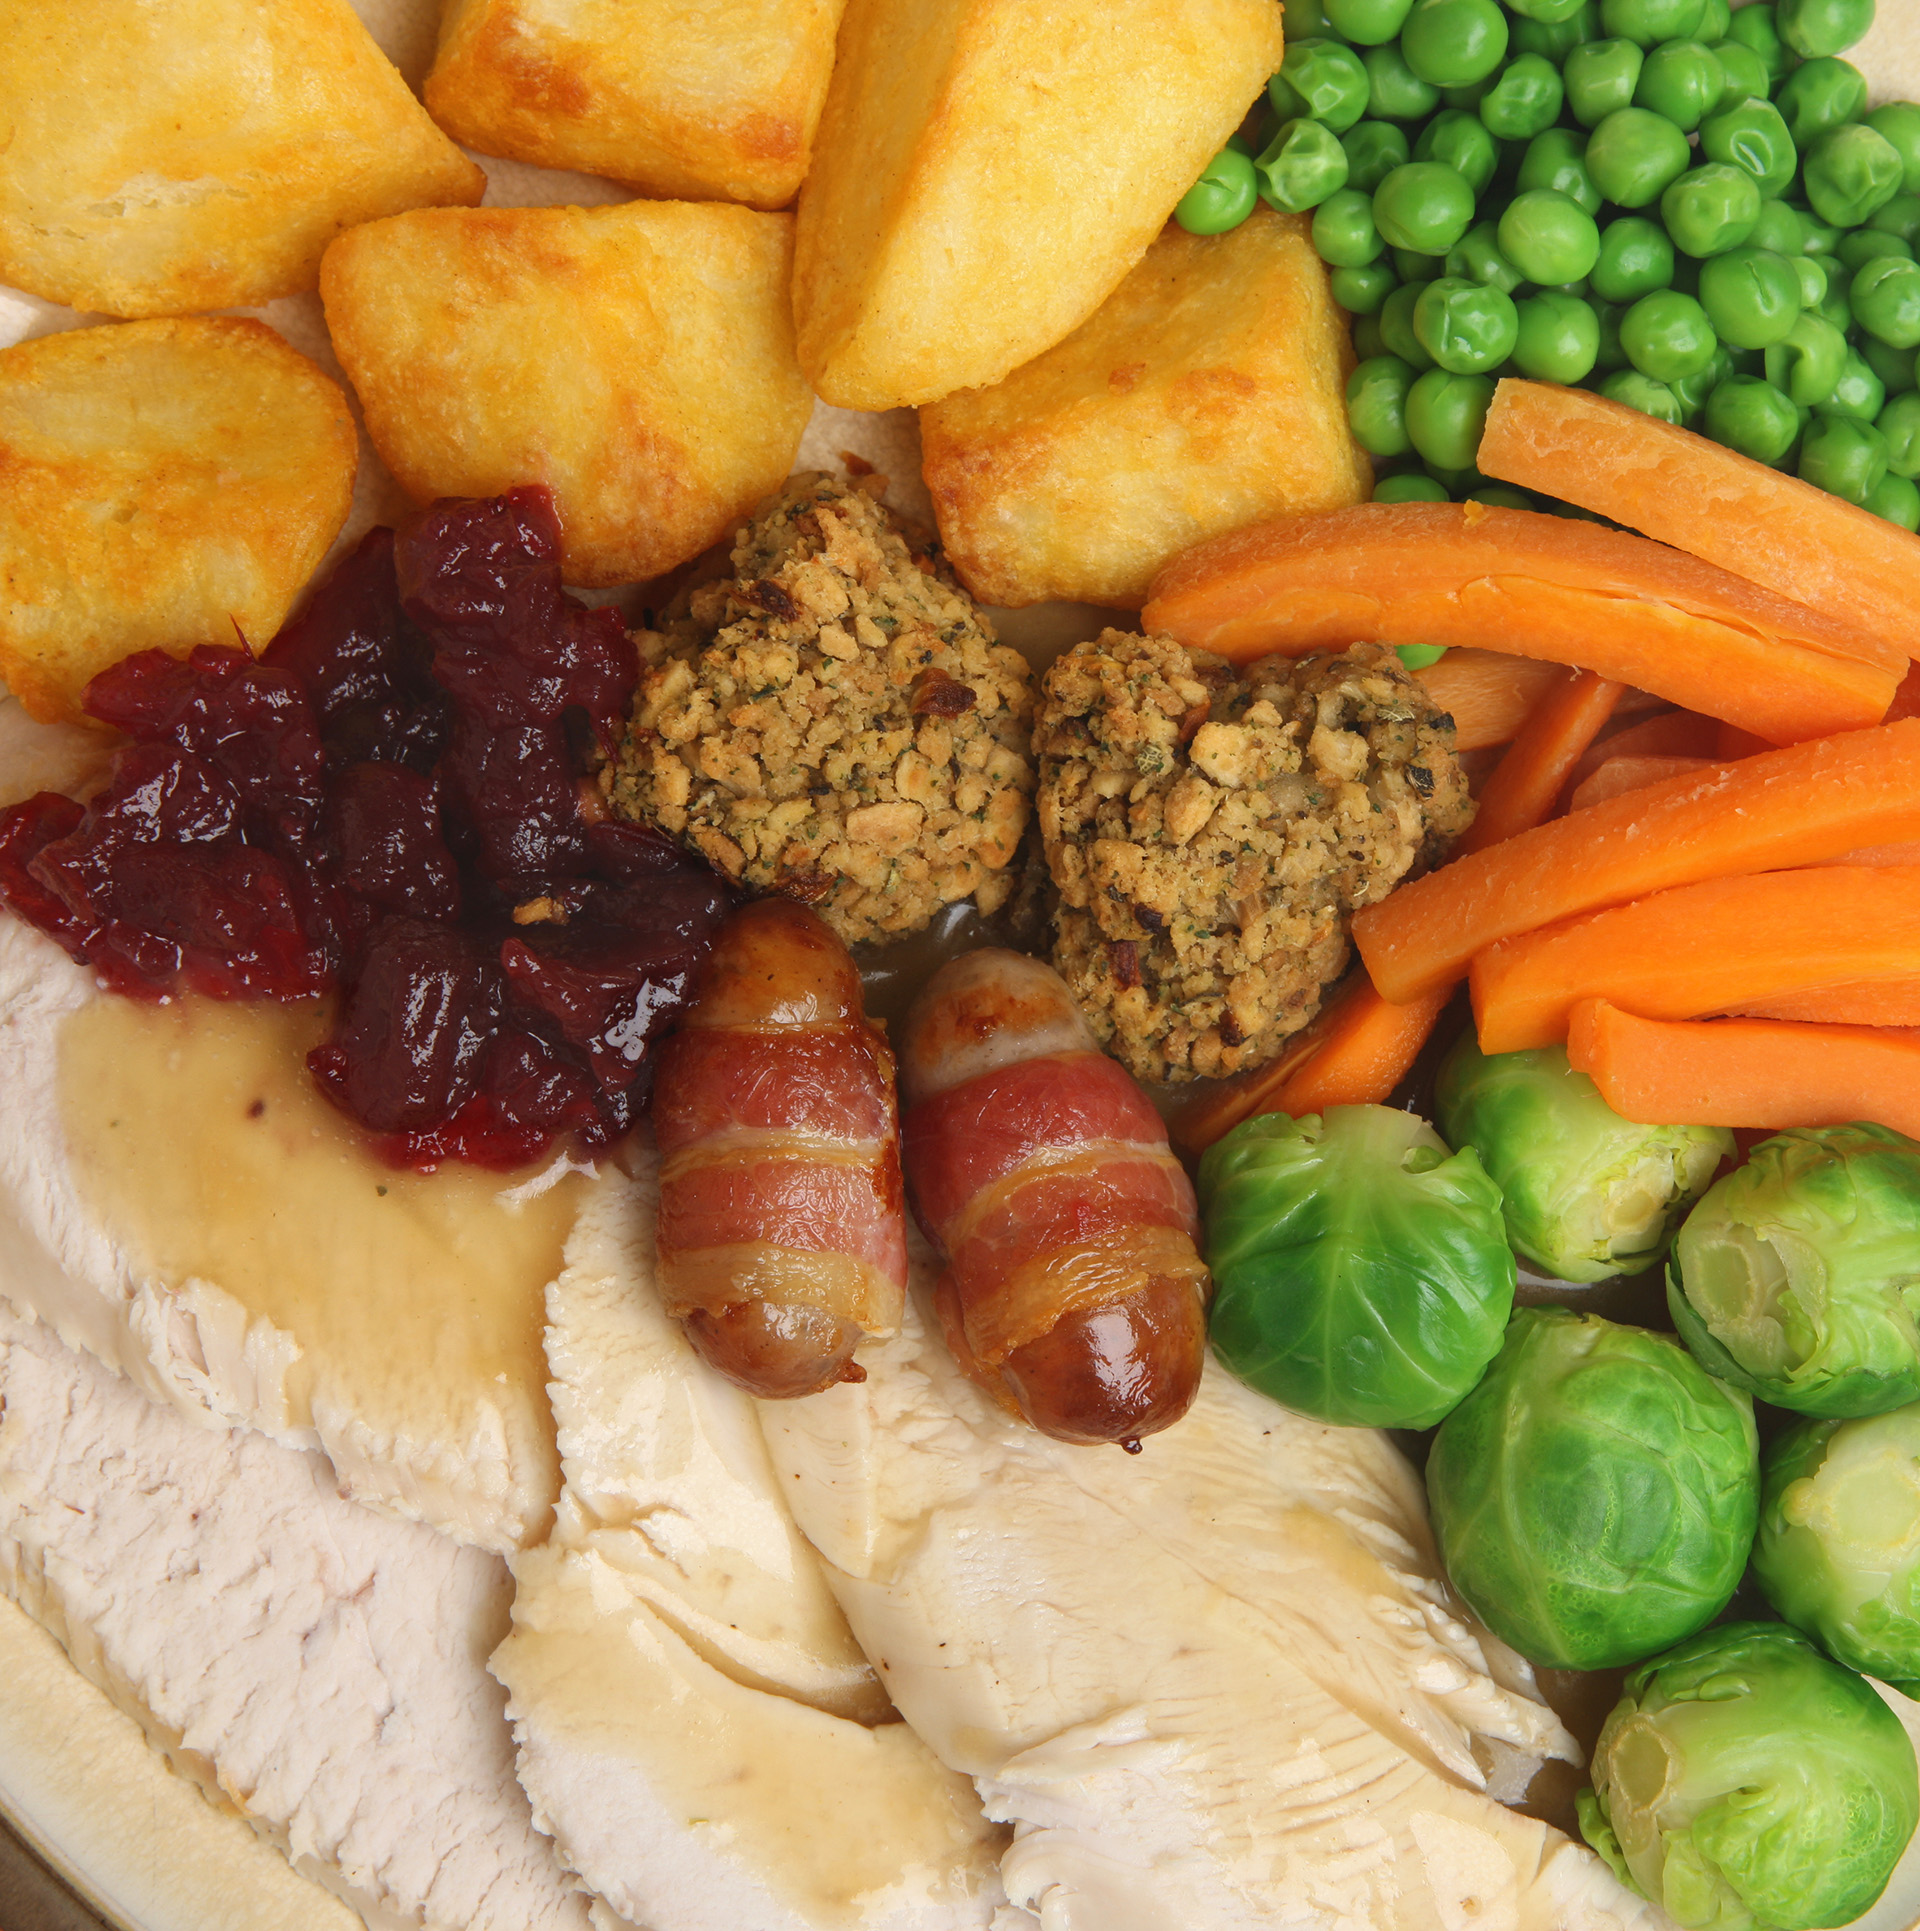 Christmas roast turkey dinner with traditional trimmings.